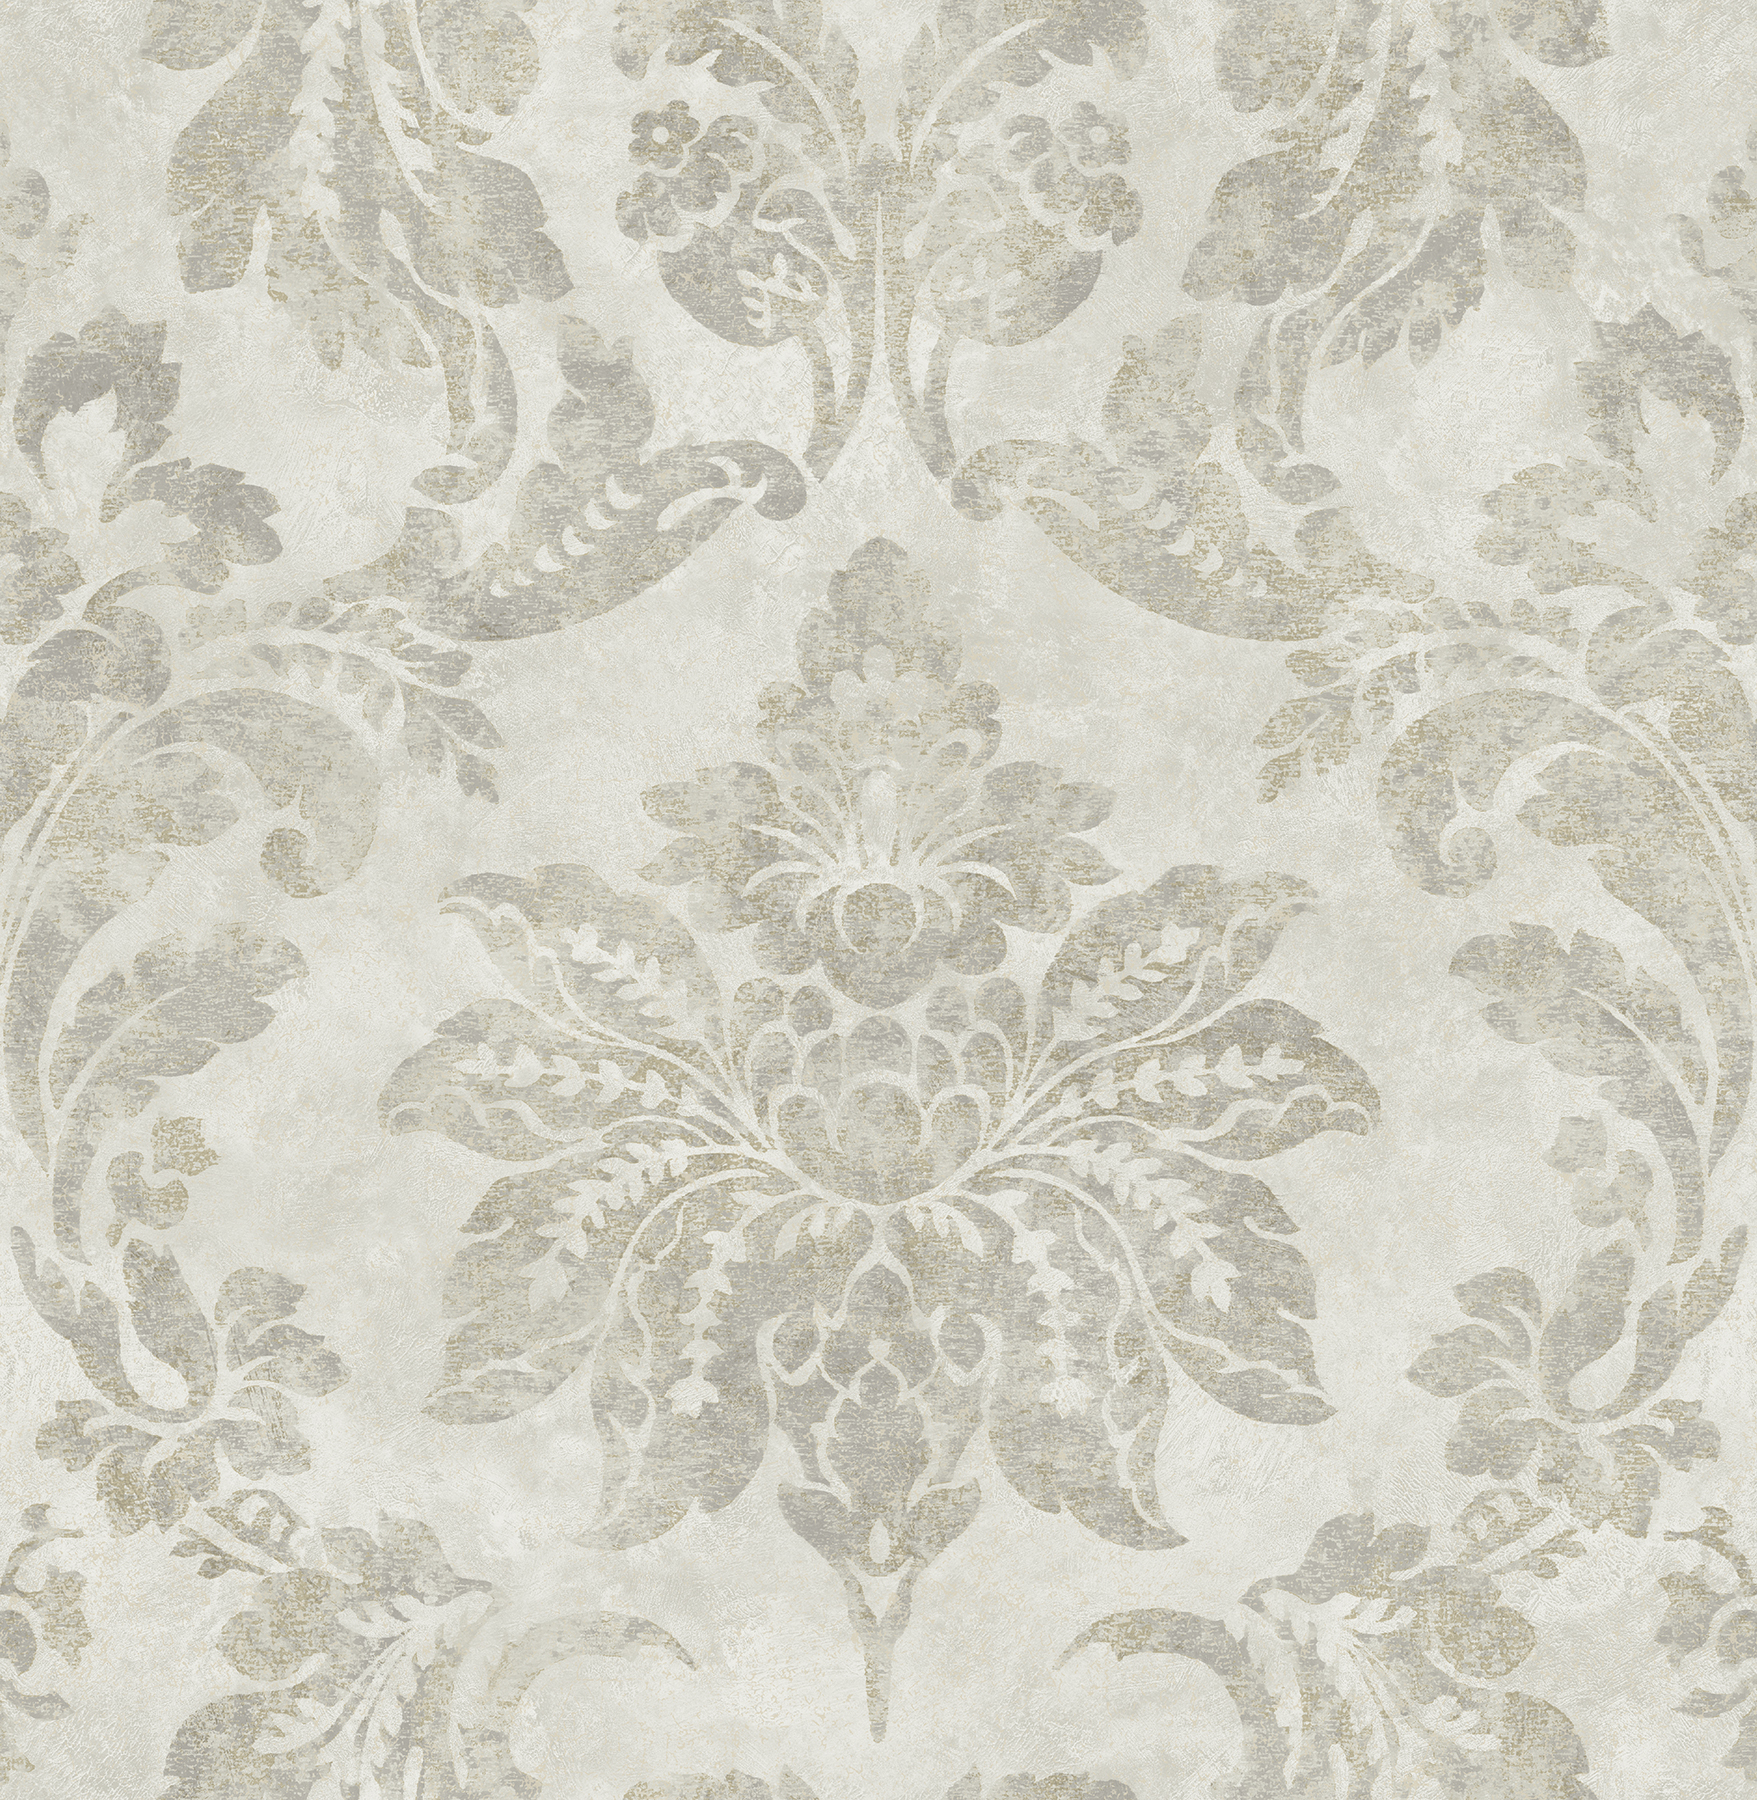 Picture of Astor Silver Damask Wallpaper